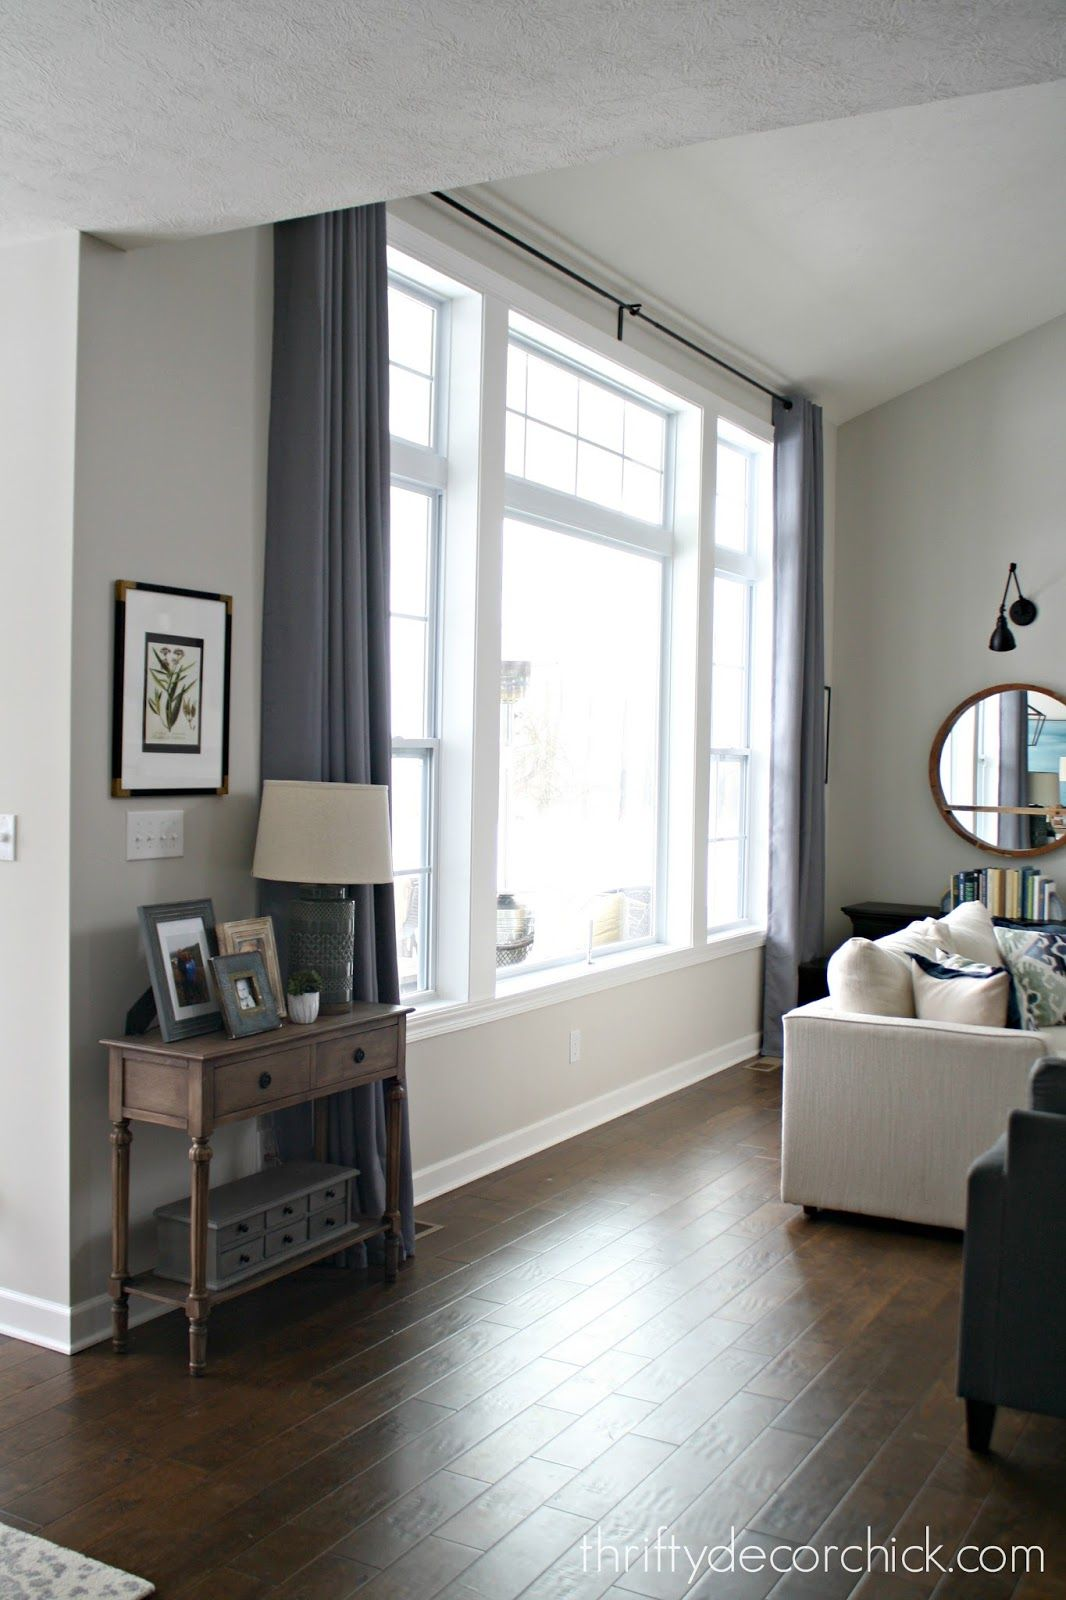 Hardware And Drapes For Big Windows That Don T Break The Bank Big Windows Living Room Picture Windows Living Room Living Room Windows